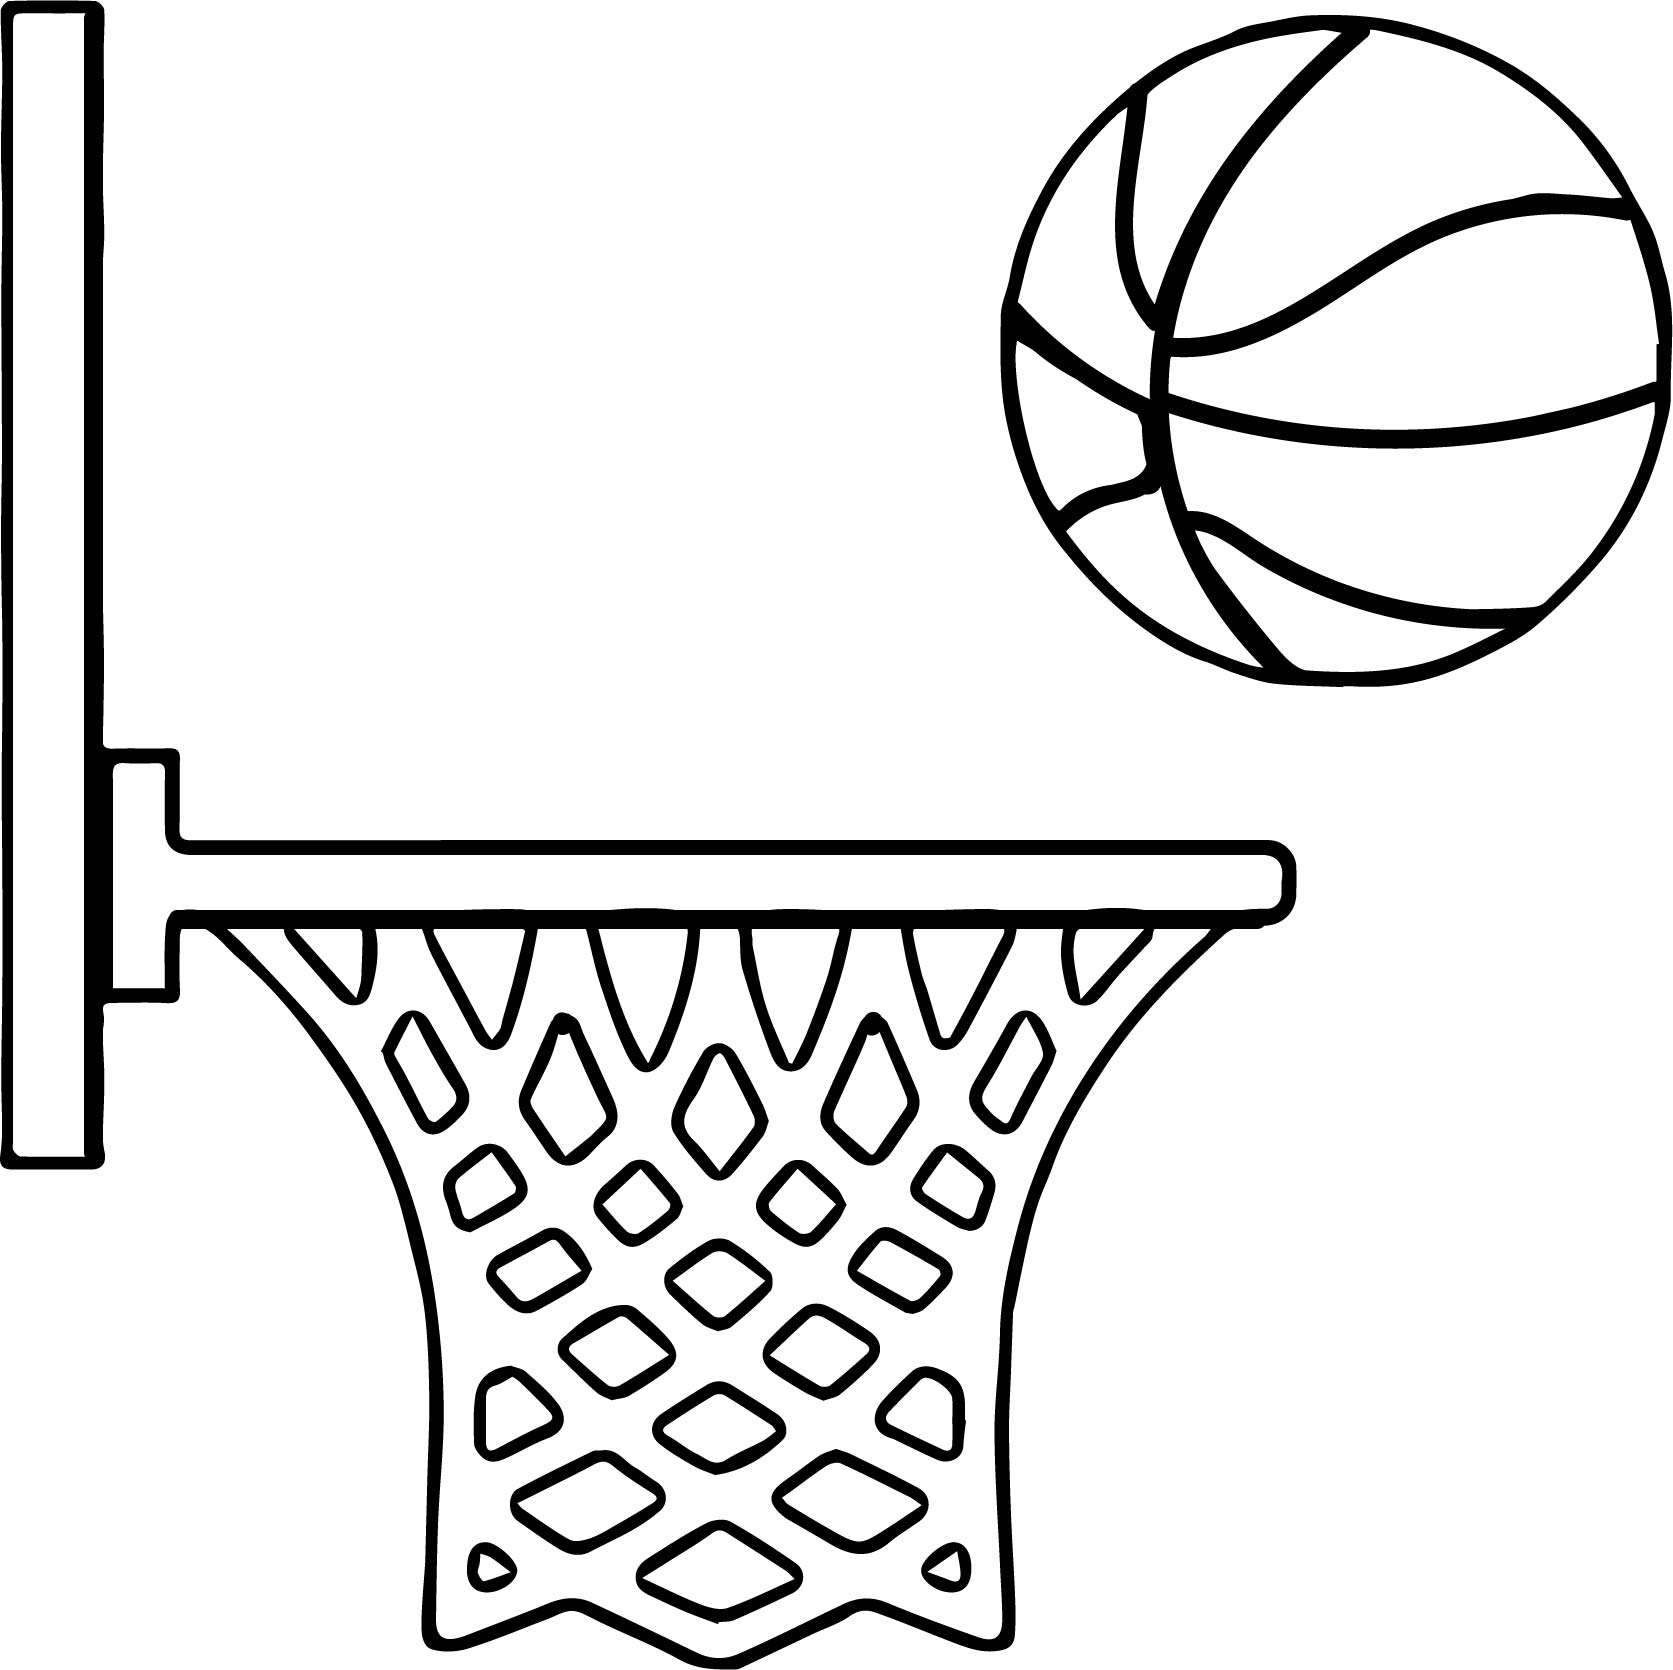 1673x1670 Side Playing Basketball Coloring Page Wecoloringpage